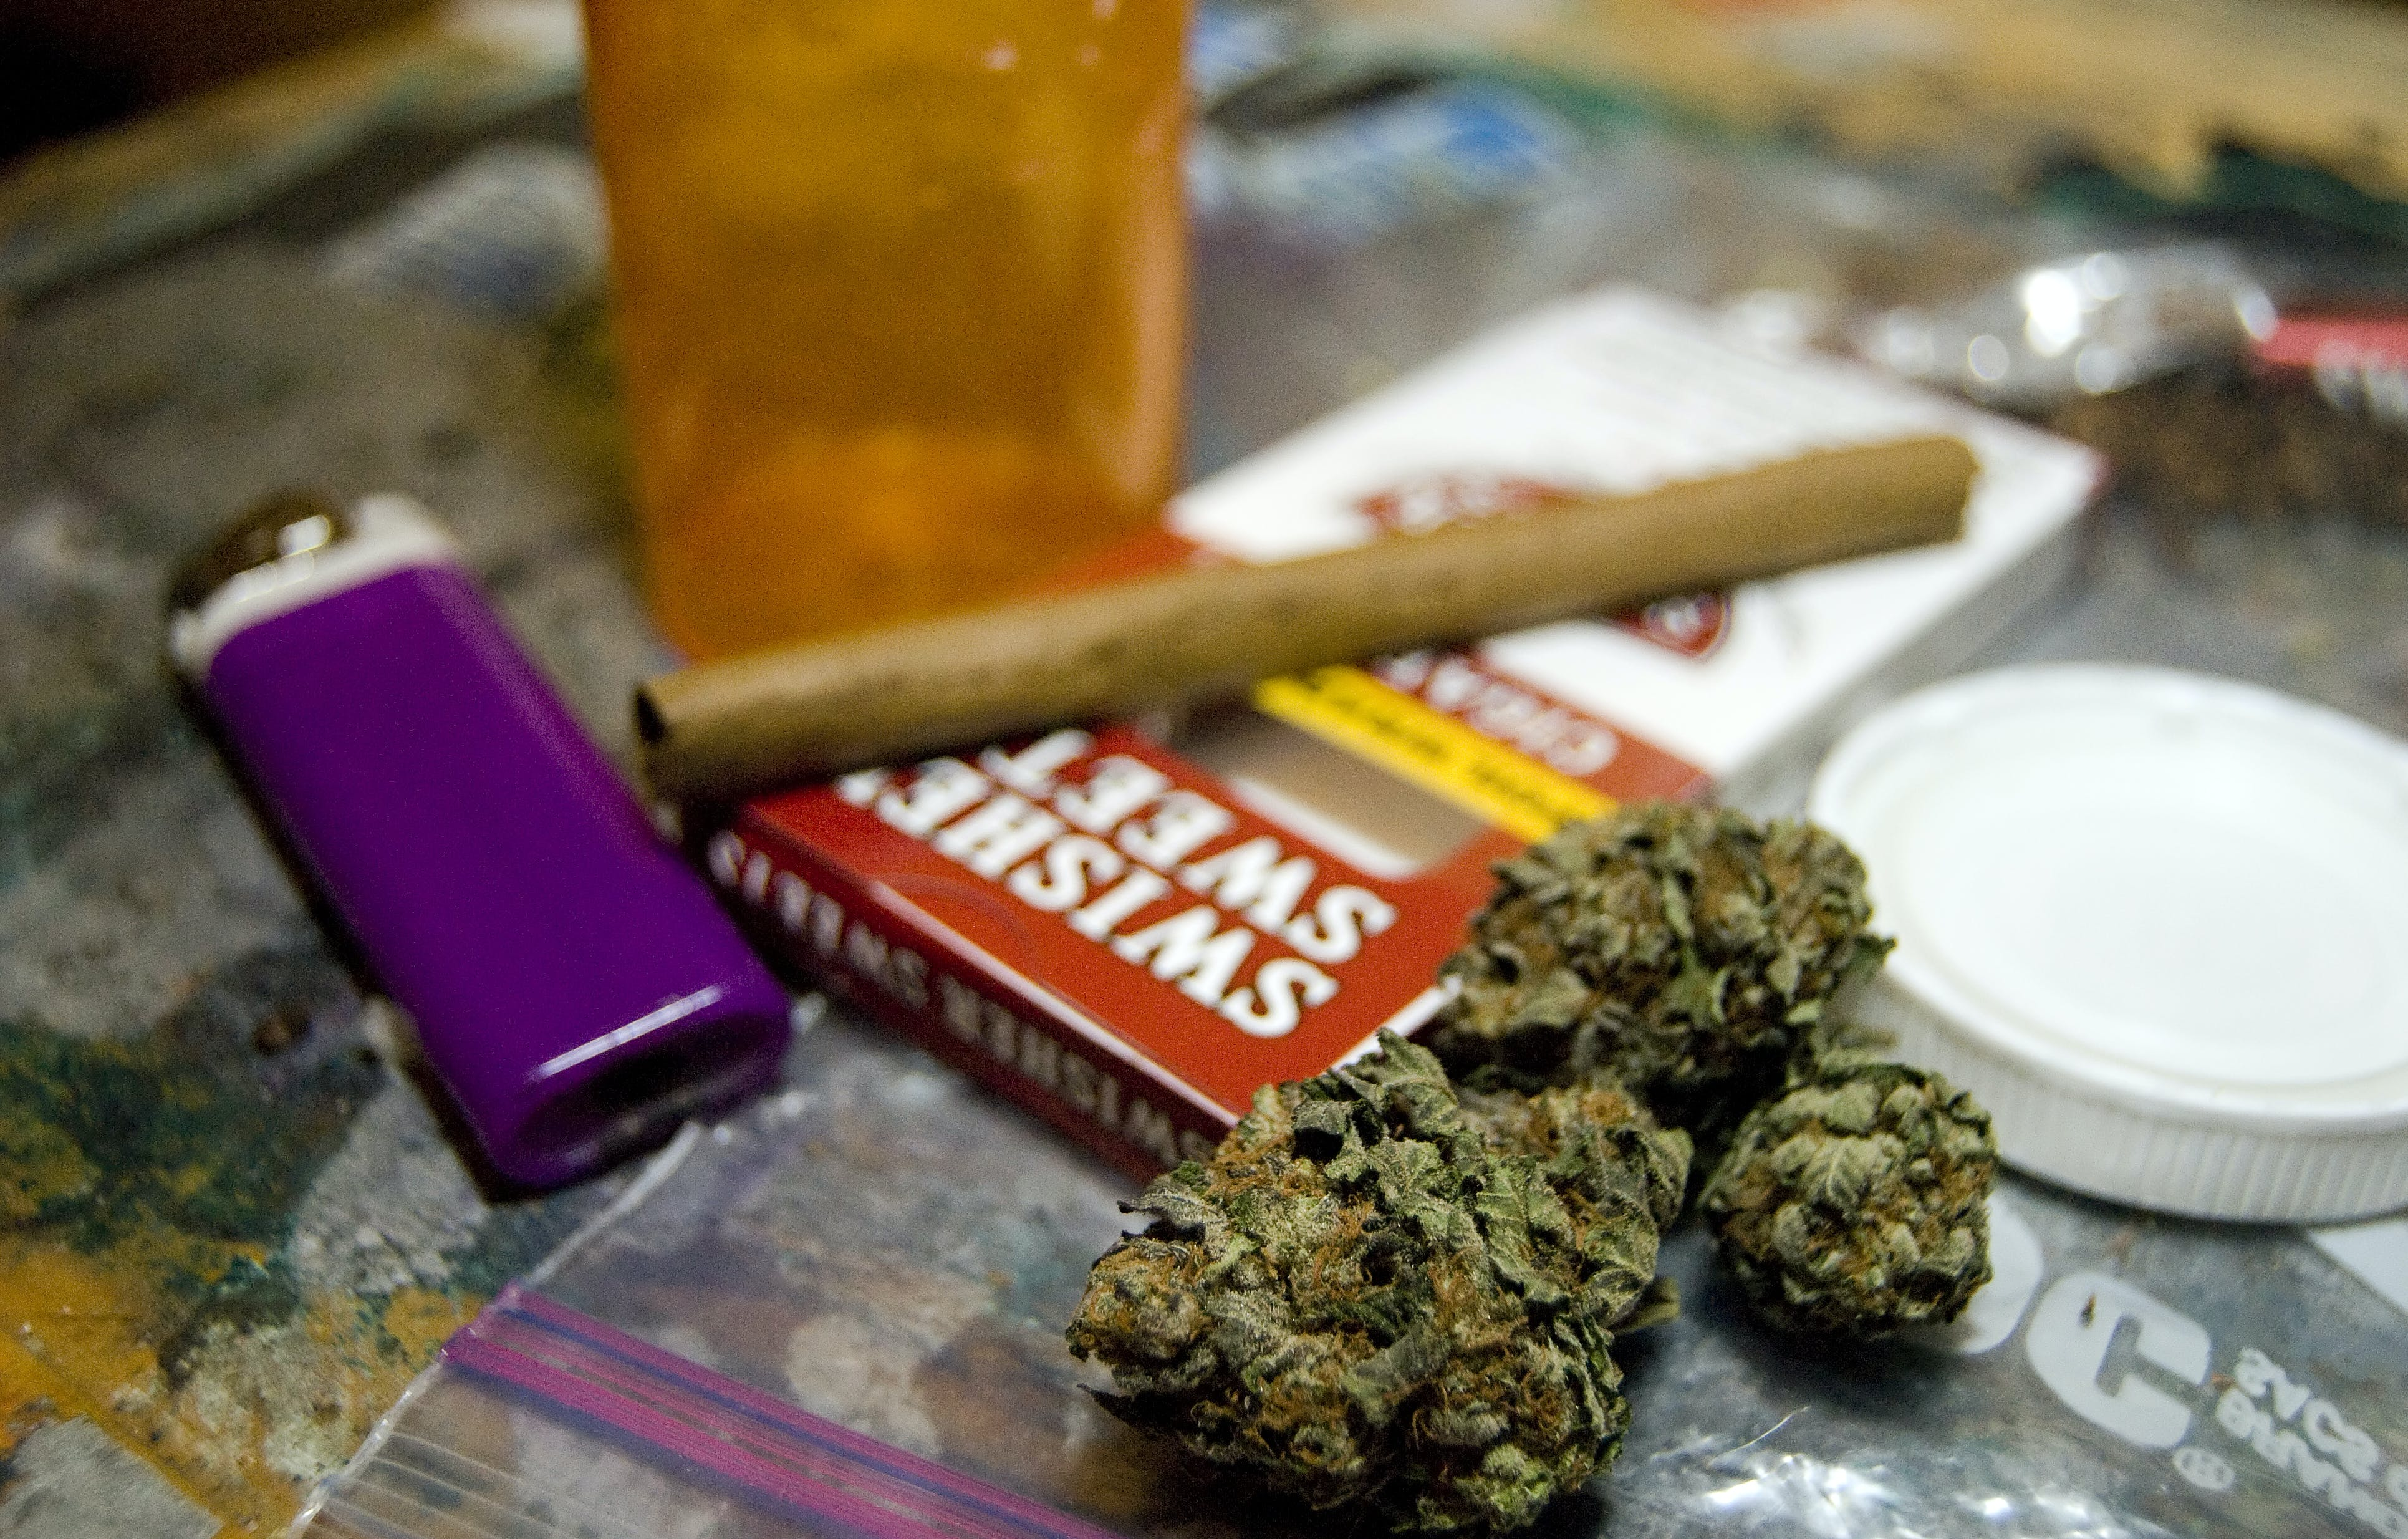 5342392874 d5e69e7df9 o Its Official: Michigan is set to vote on recreational marijuana this fall